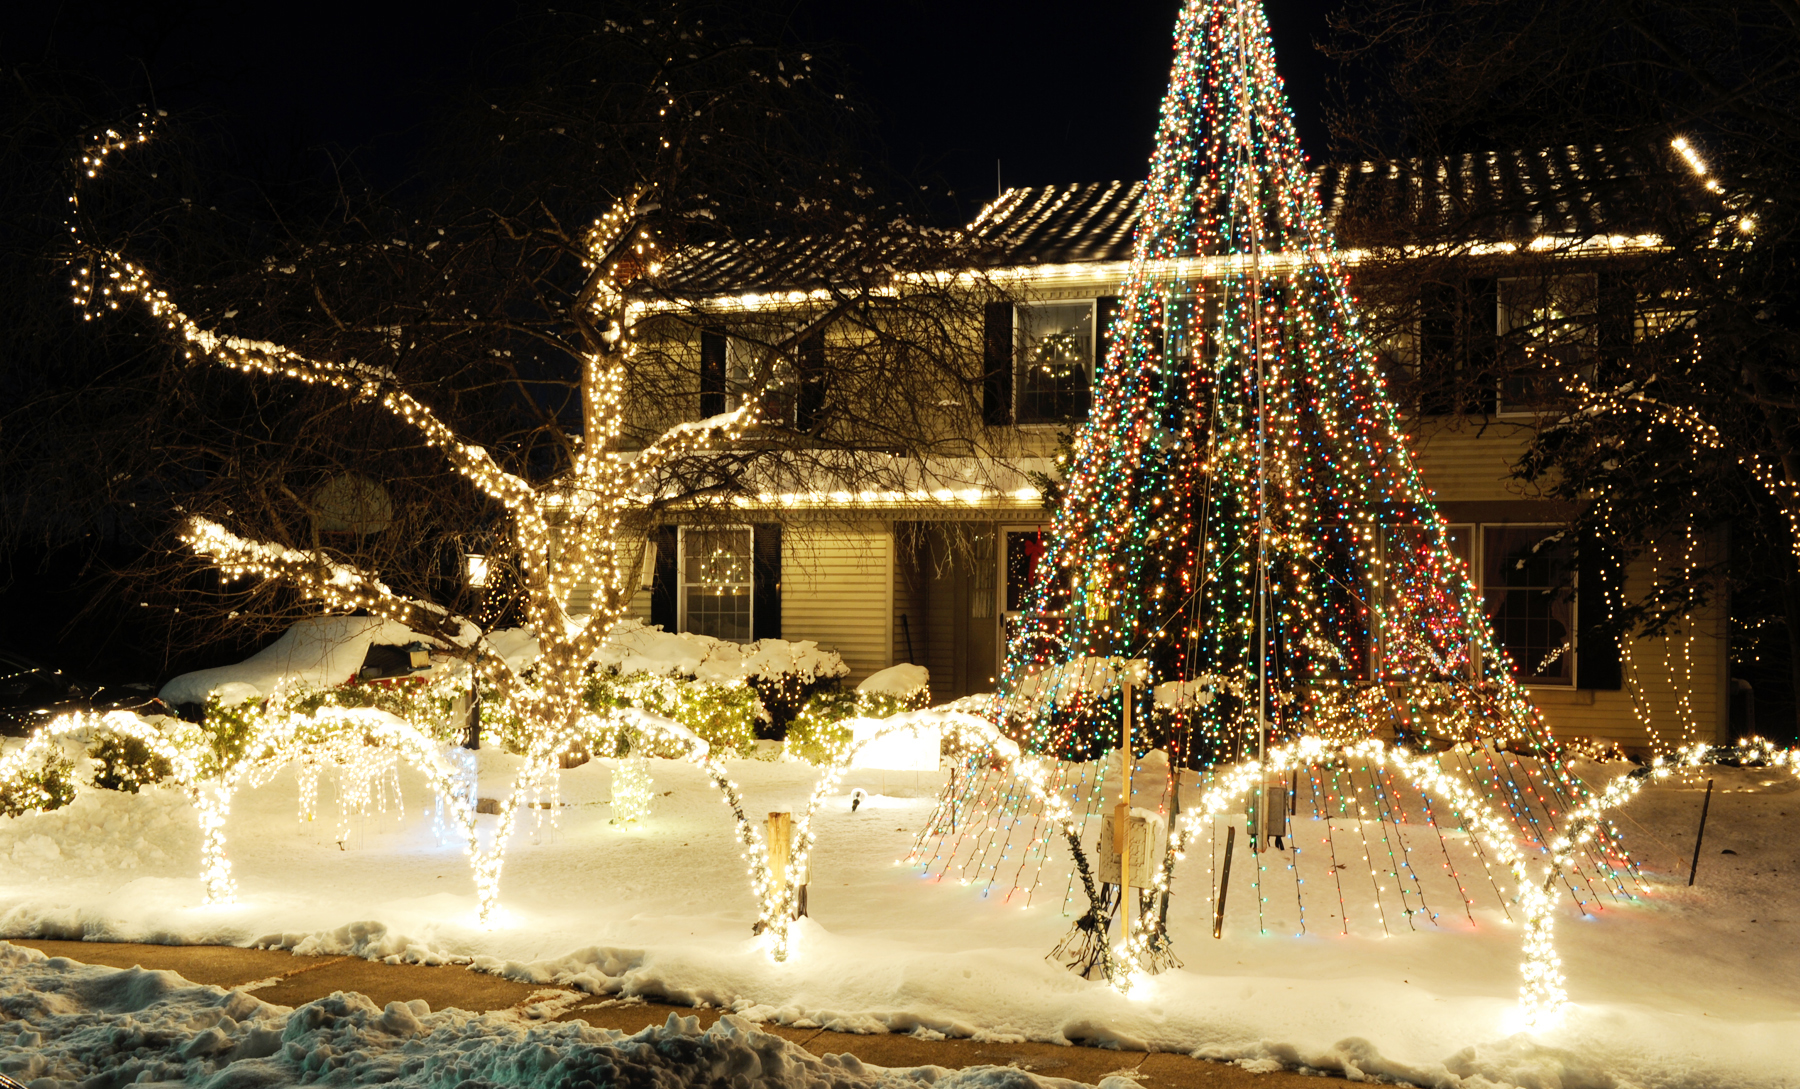 Holiday light displays in Baltimore County on holiday modeling ideas, holiday fashion ideas, holiday living room ideas, holiday paint ideas, holiday retail packaging ideas, holiday bedding ideas, leaf removal ideas, holiday advertising ideas, xmas light ideas, holiday art ideas, holiday lights ideas, holiday cooking ideas, holiday gifts ideas, holiday decor ideas, holiday bedroom ideas, holiday office ideas, holiday catering ideas, holiday entertainment ideas, holiday design ideas, holiday construction ideas,